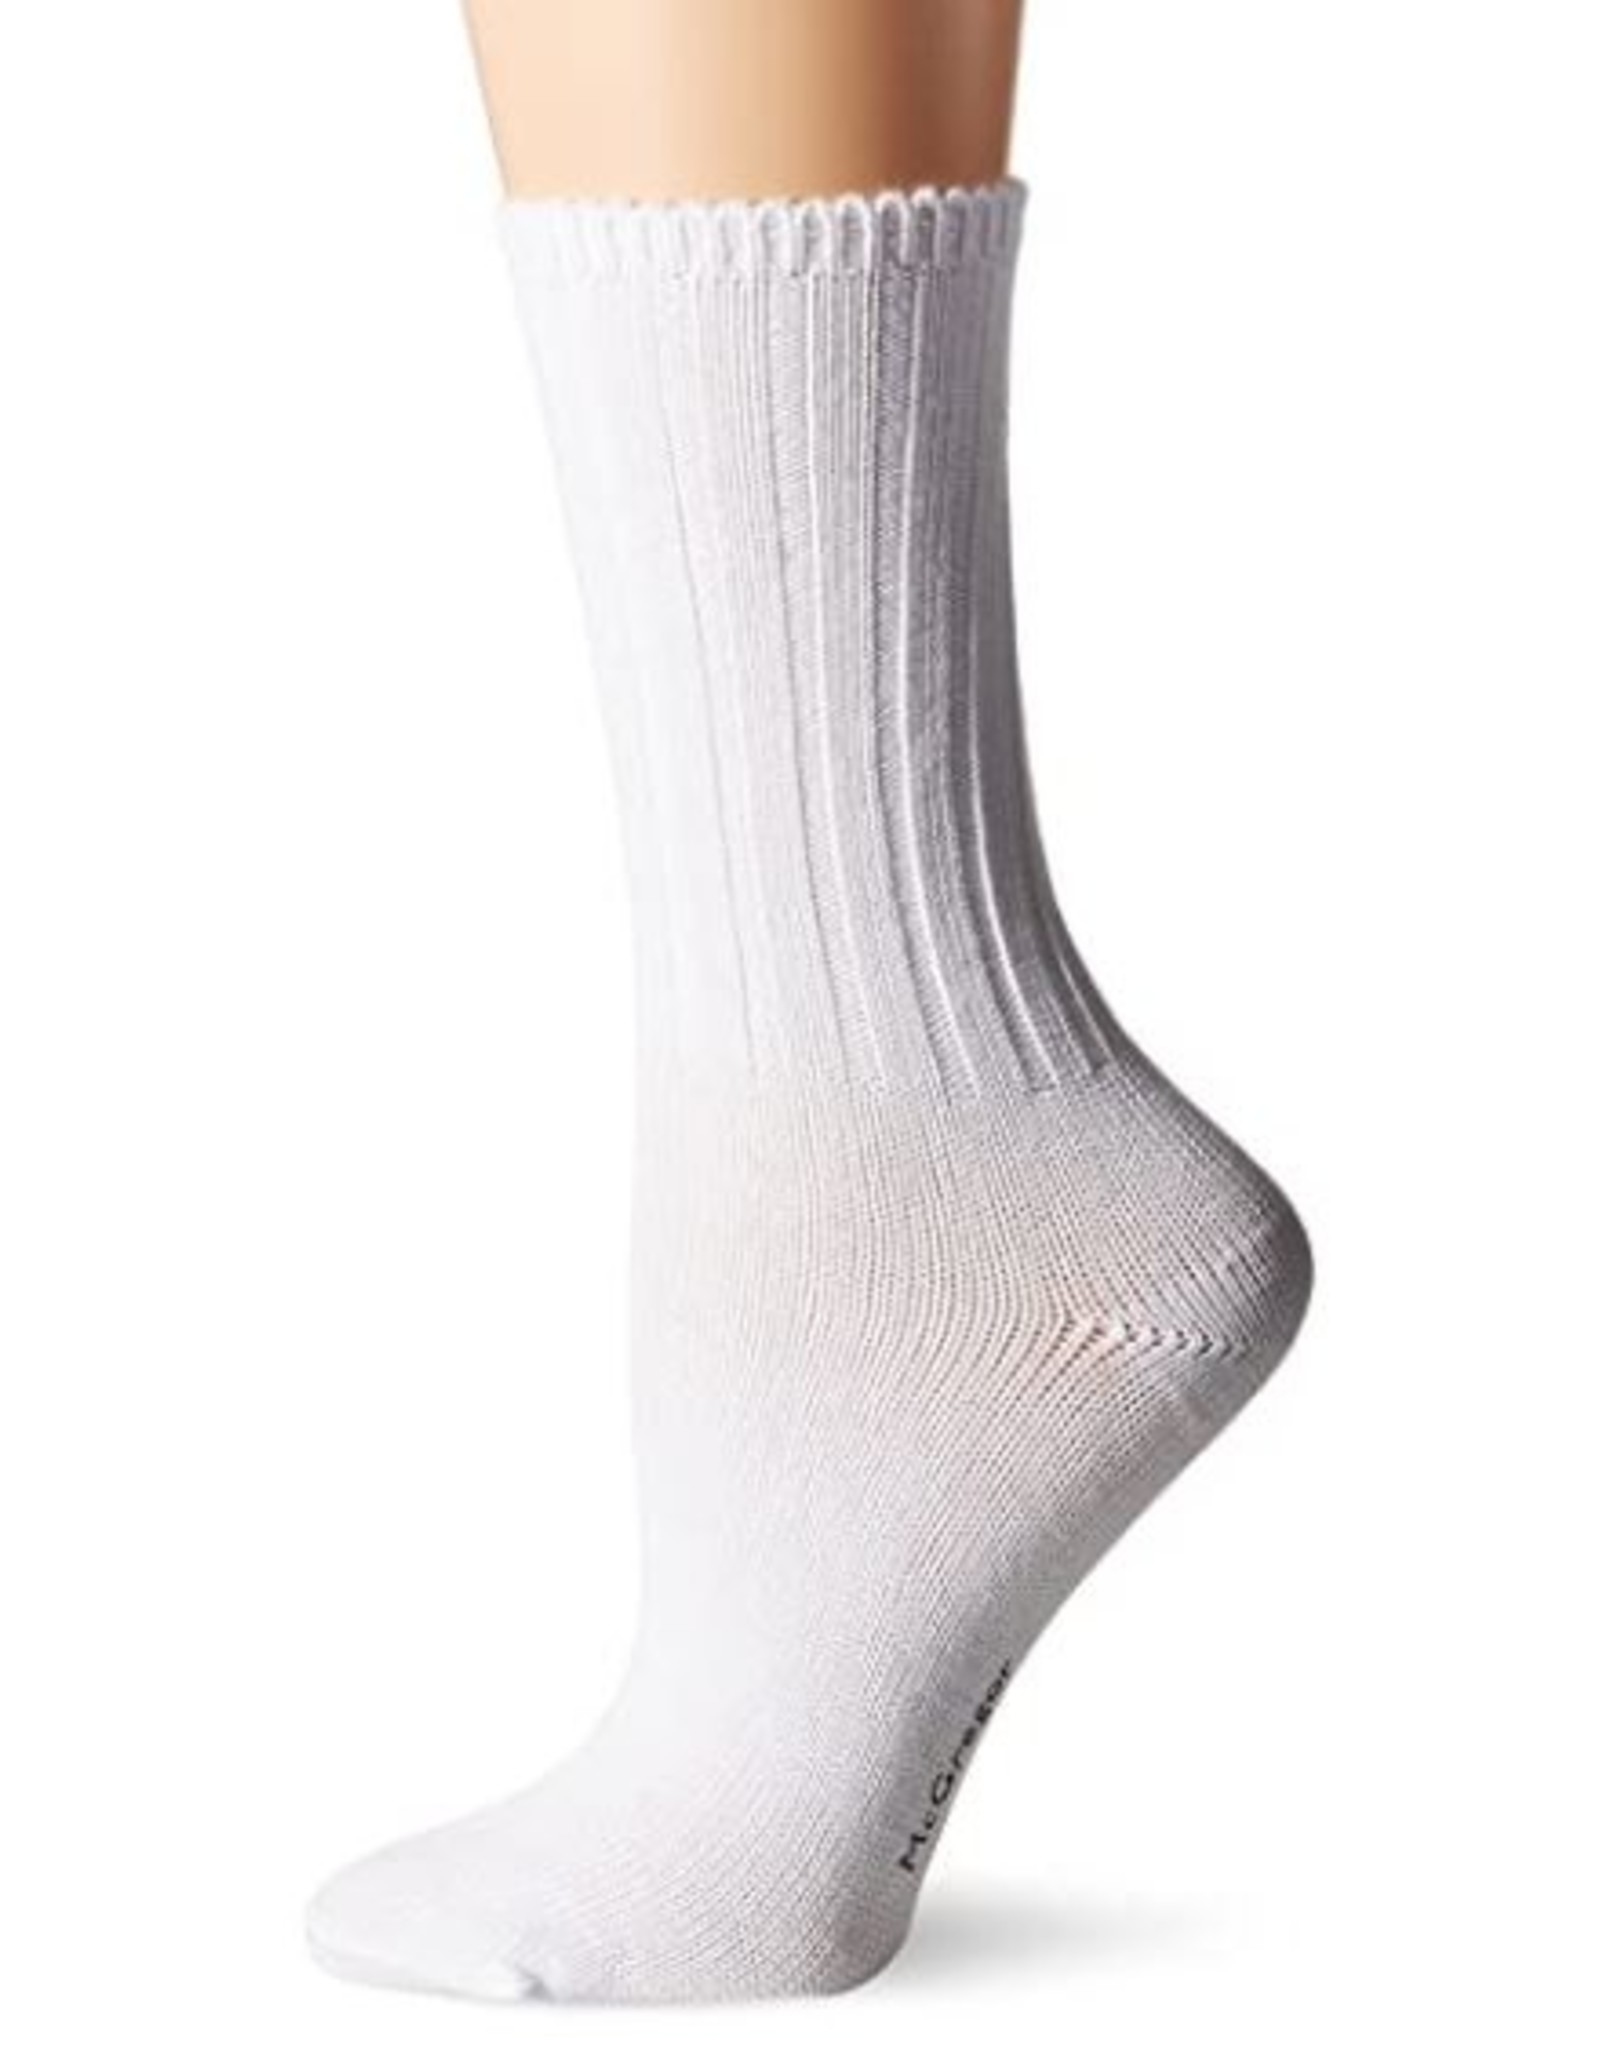 McGregor Socks Women's Weekender Cotton Sock - White